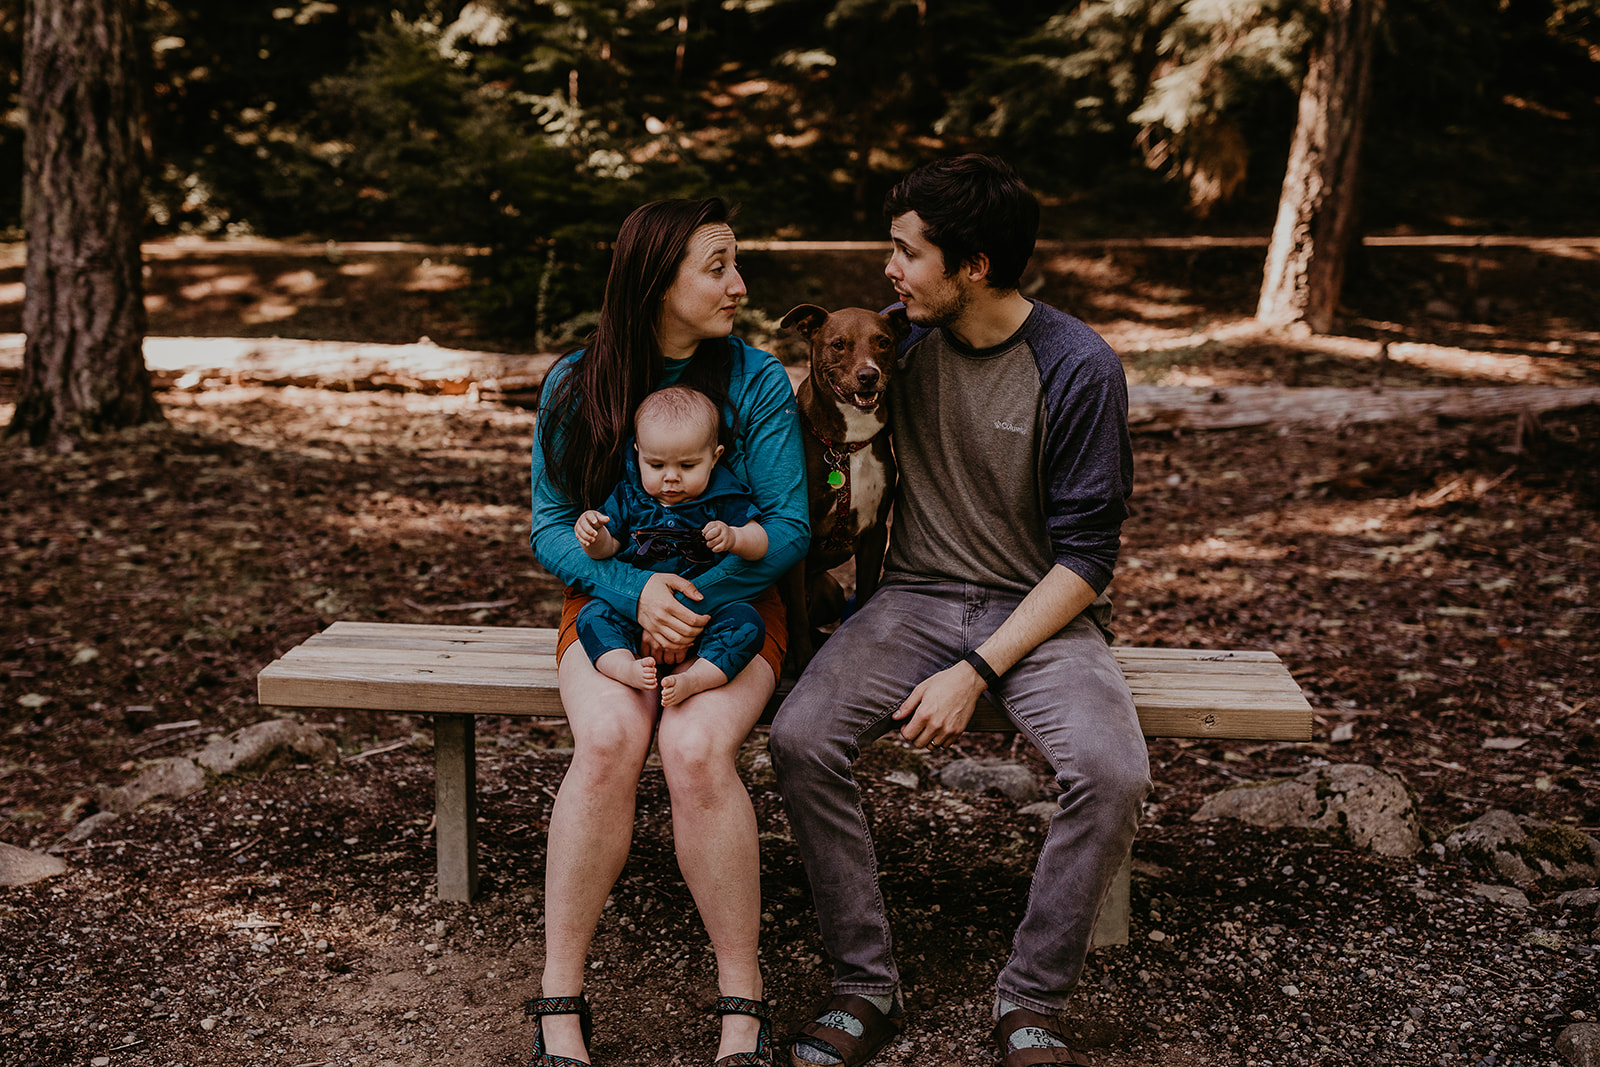 kachess-lake-camping-family-portraits-megan-gallagher-photography_(249_of_335).jpg